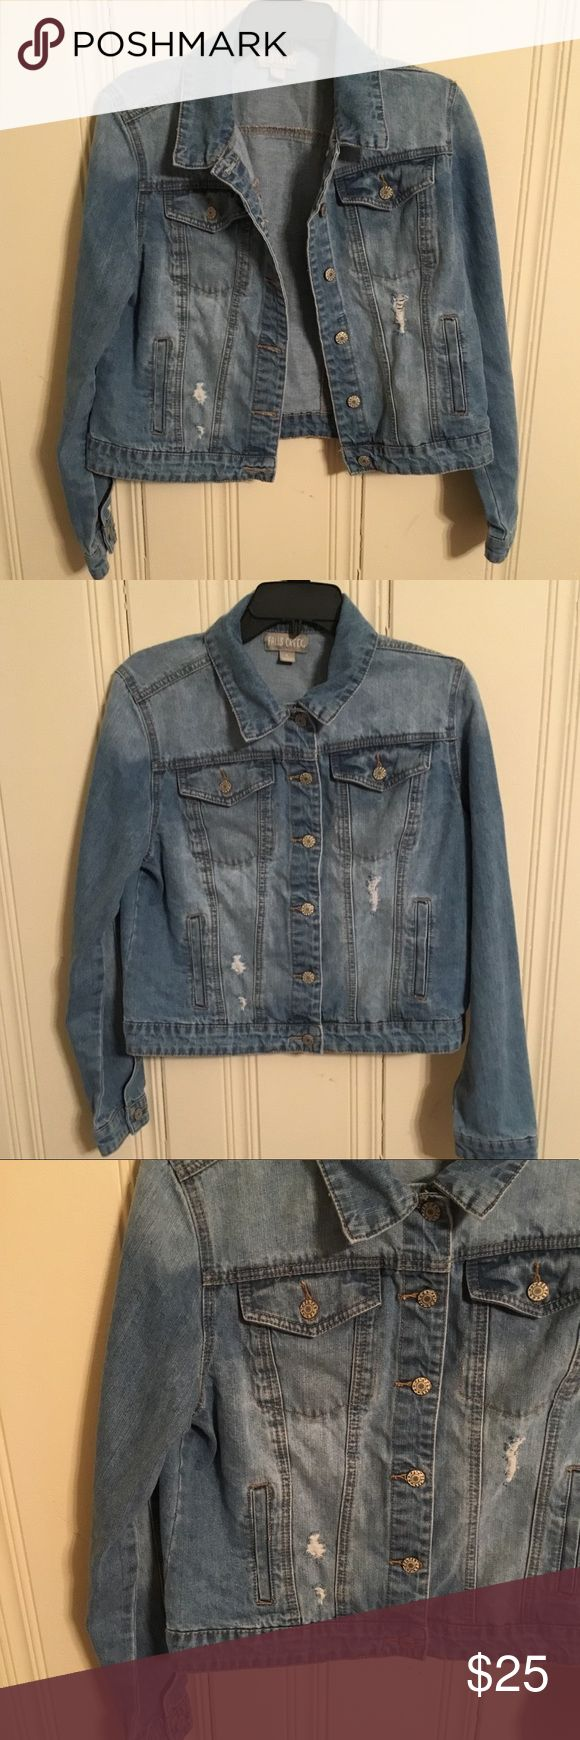 NWOT Falls Creek distressed faded jean jacket NWOT (My stepmom wanted the bridesmaids to wear these for pictures in her wedding, but we never did.)  Light blue jean faded button up jacket  Size large  True to size, would fit a medium if you like it somewhat loose  Please let me know if you have any questions or need more specific measurements!  A lot of my items sell within the first three days of listing so get it while you can!  Bundle and save! Jackets & Coats Jean Jackets